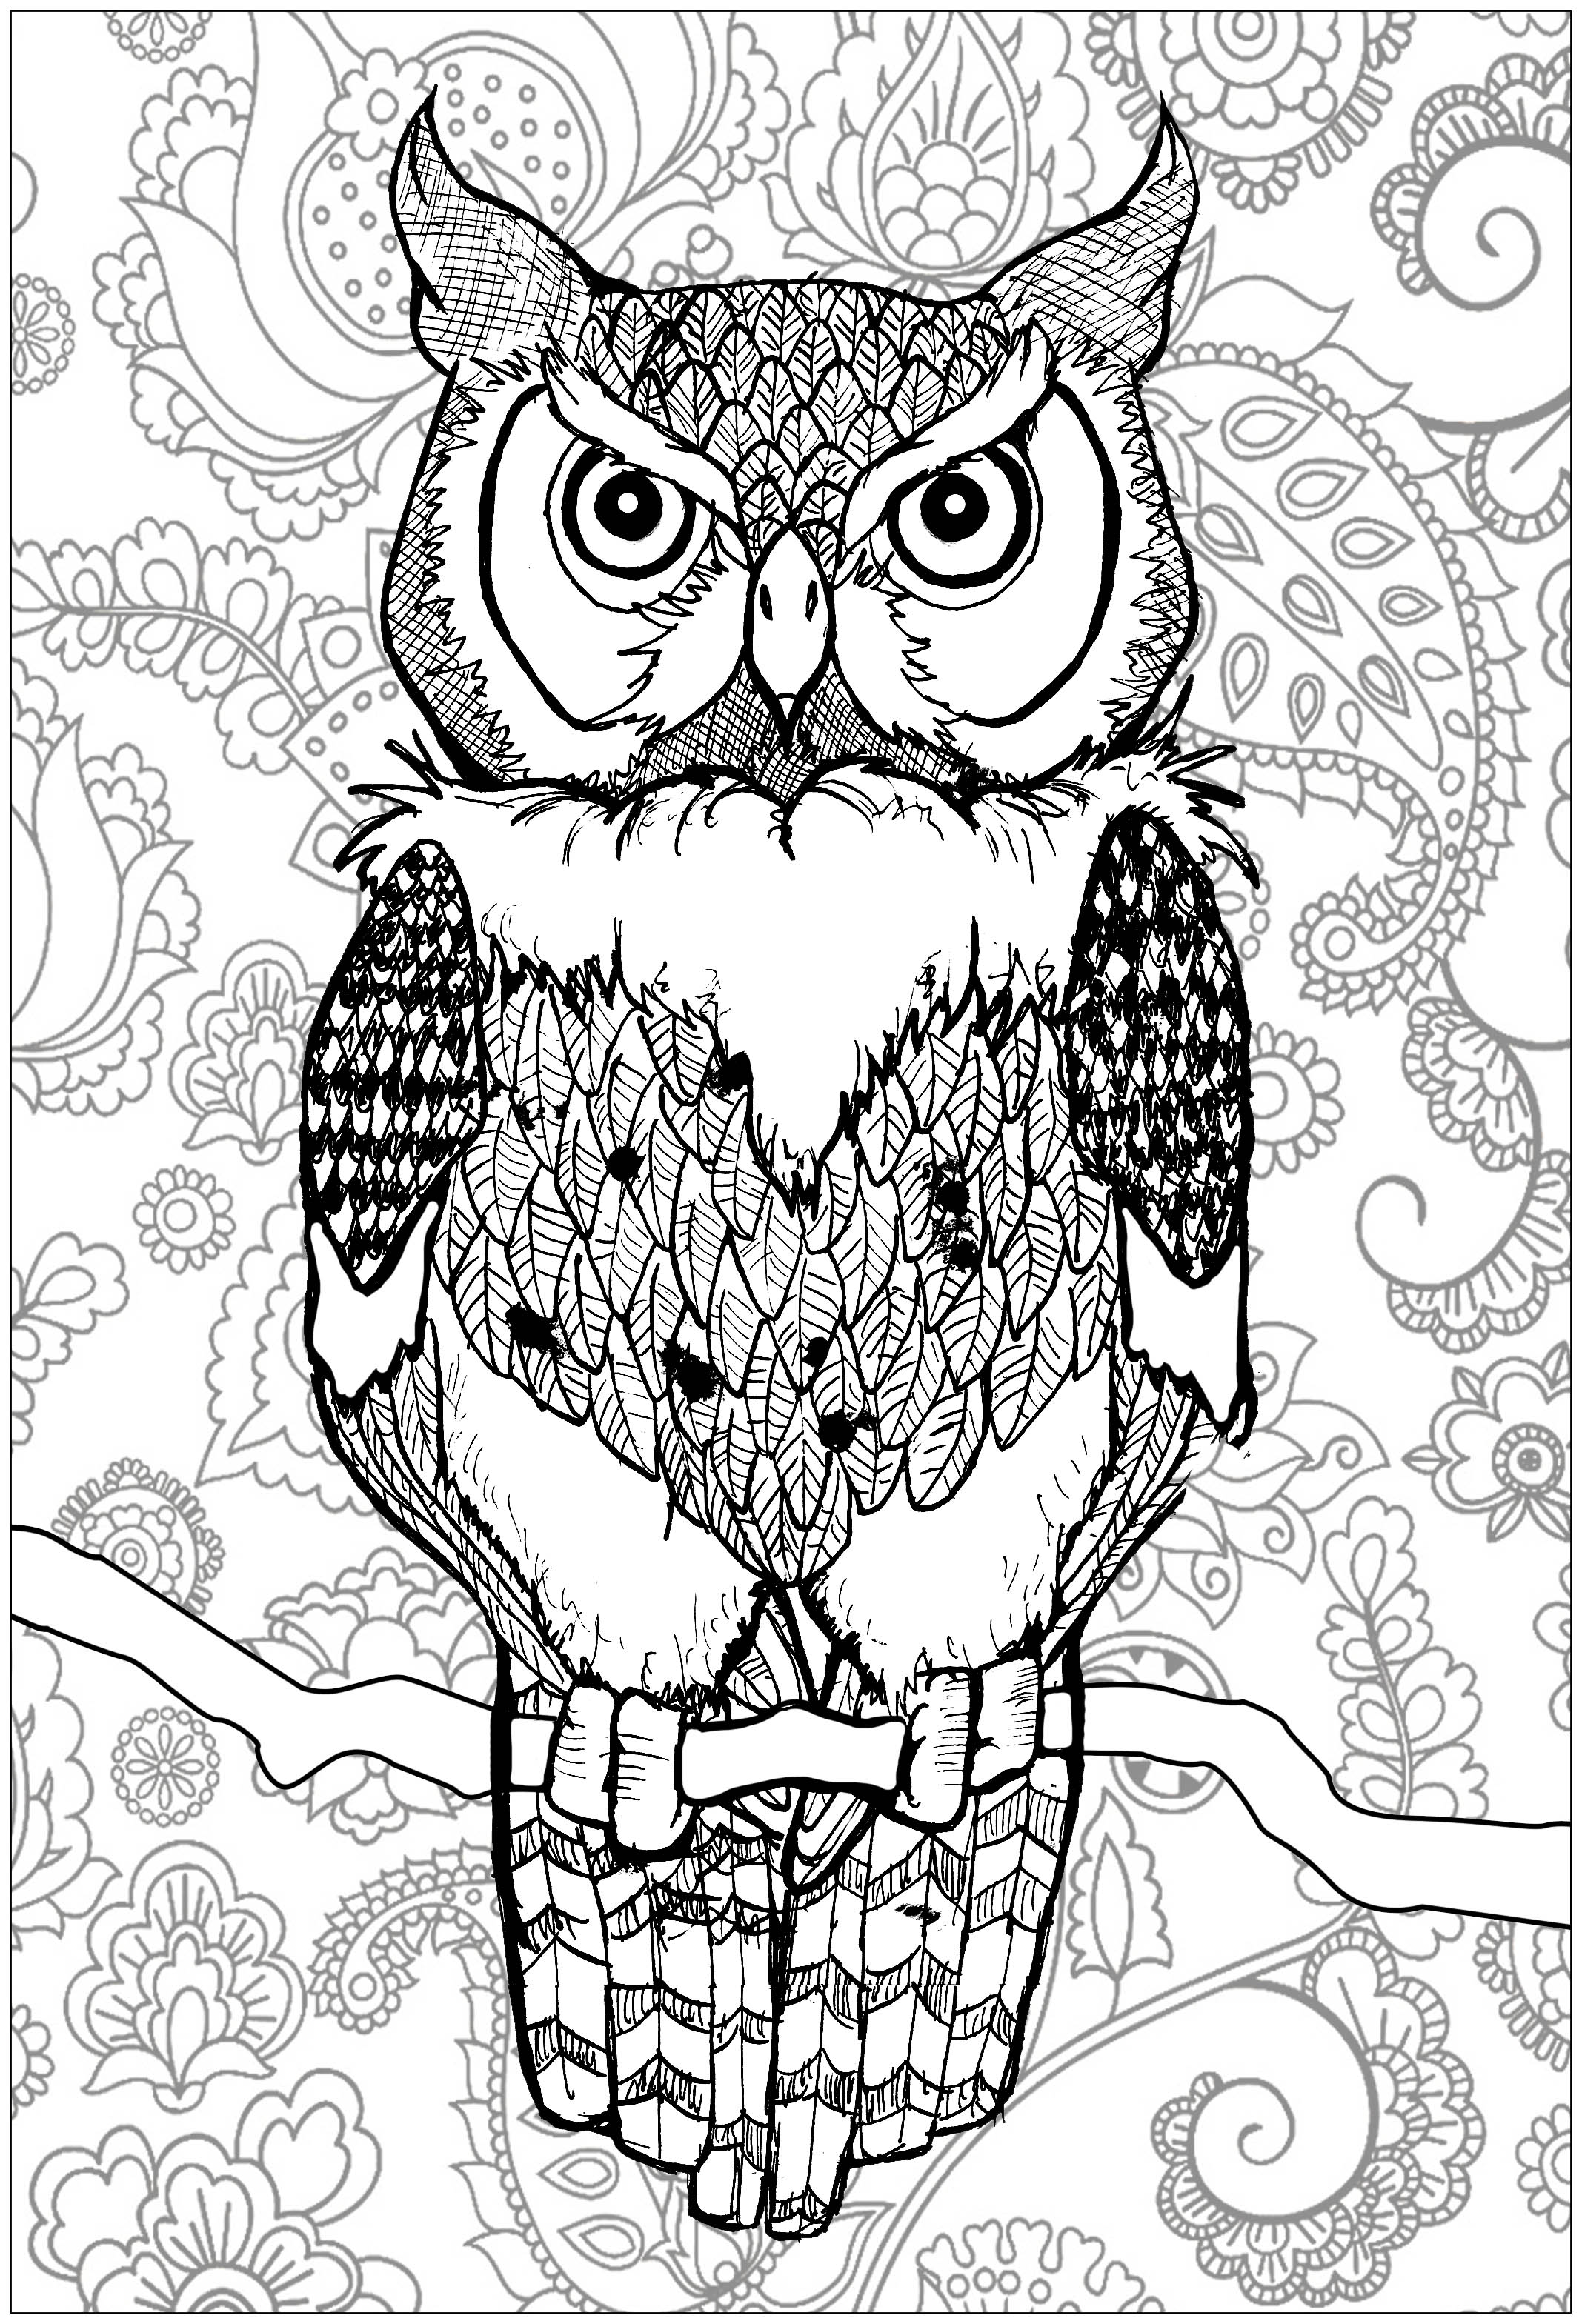 piercing eyes own with background - Owl Coloring